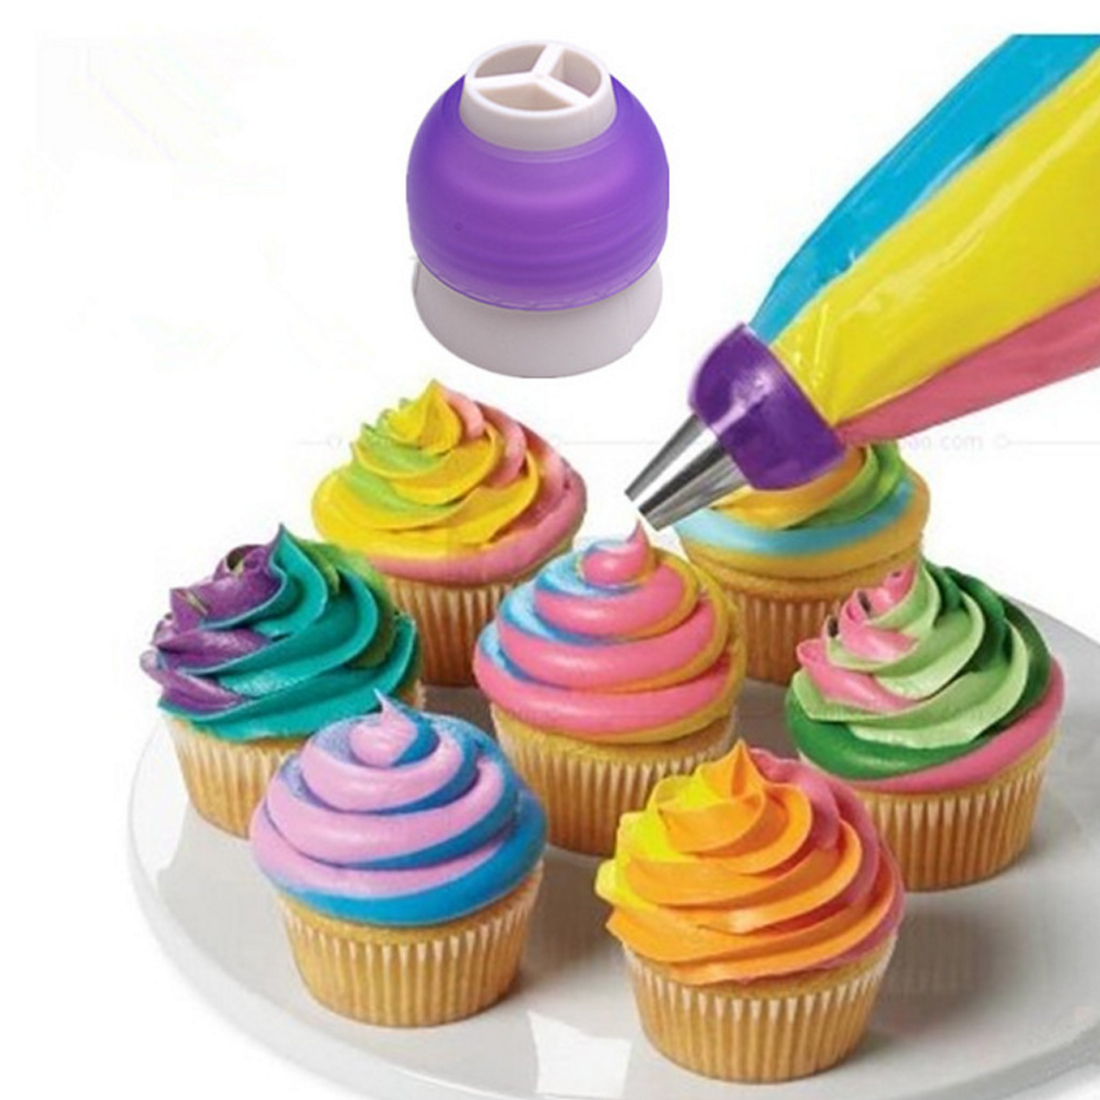 Piping Dyse Converter til Cupcake Dyse Converter 1 stk 3 Holes Cake Decoration Converter Bland 3 farver Icing